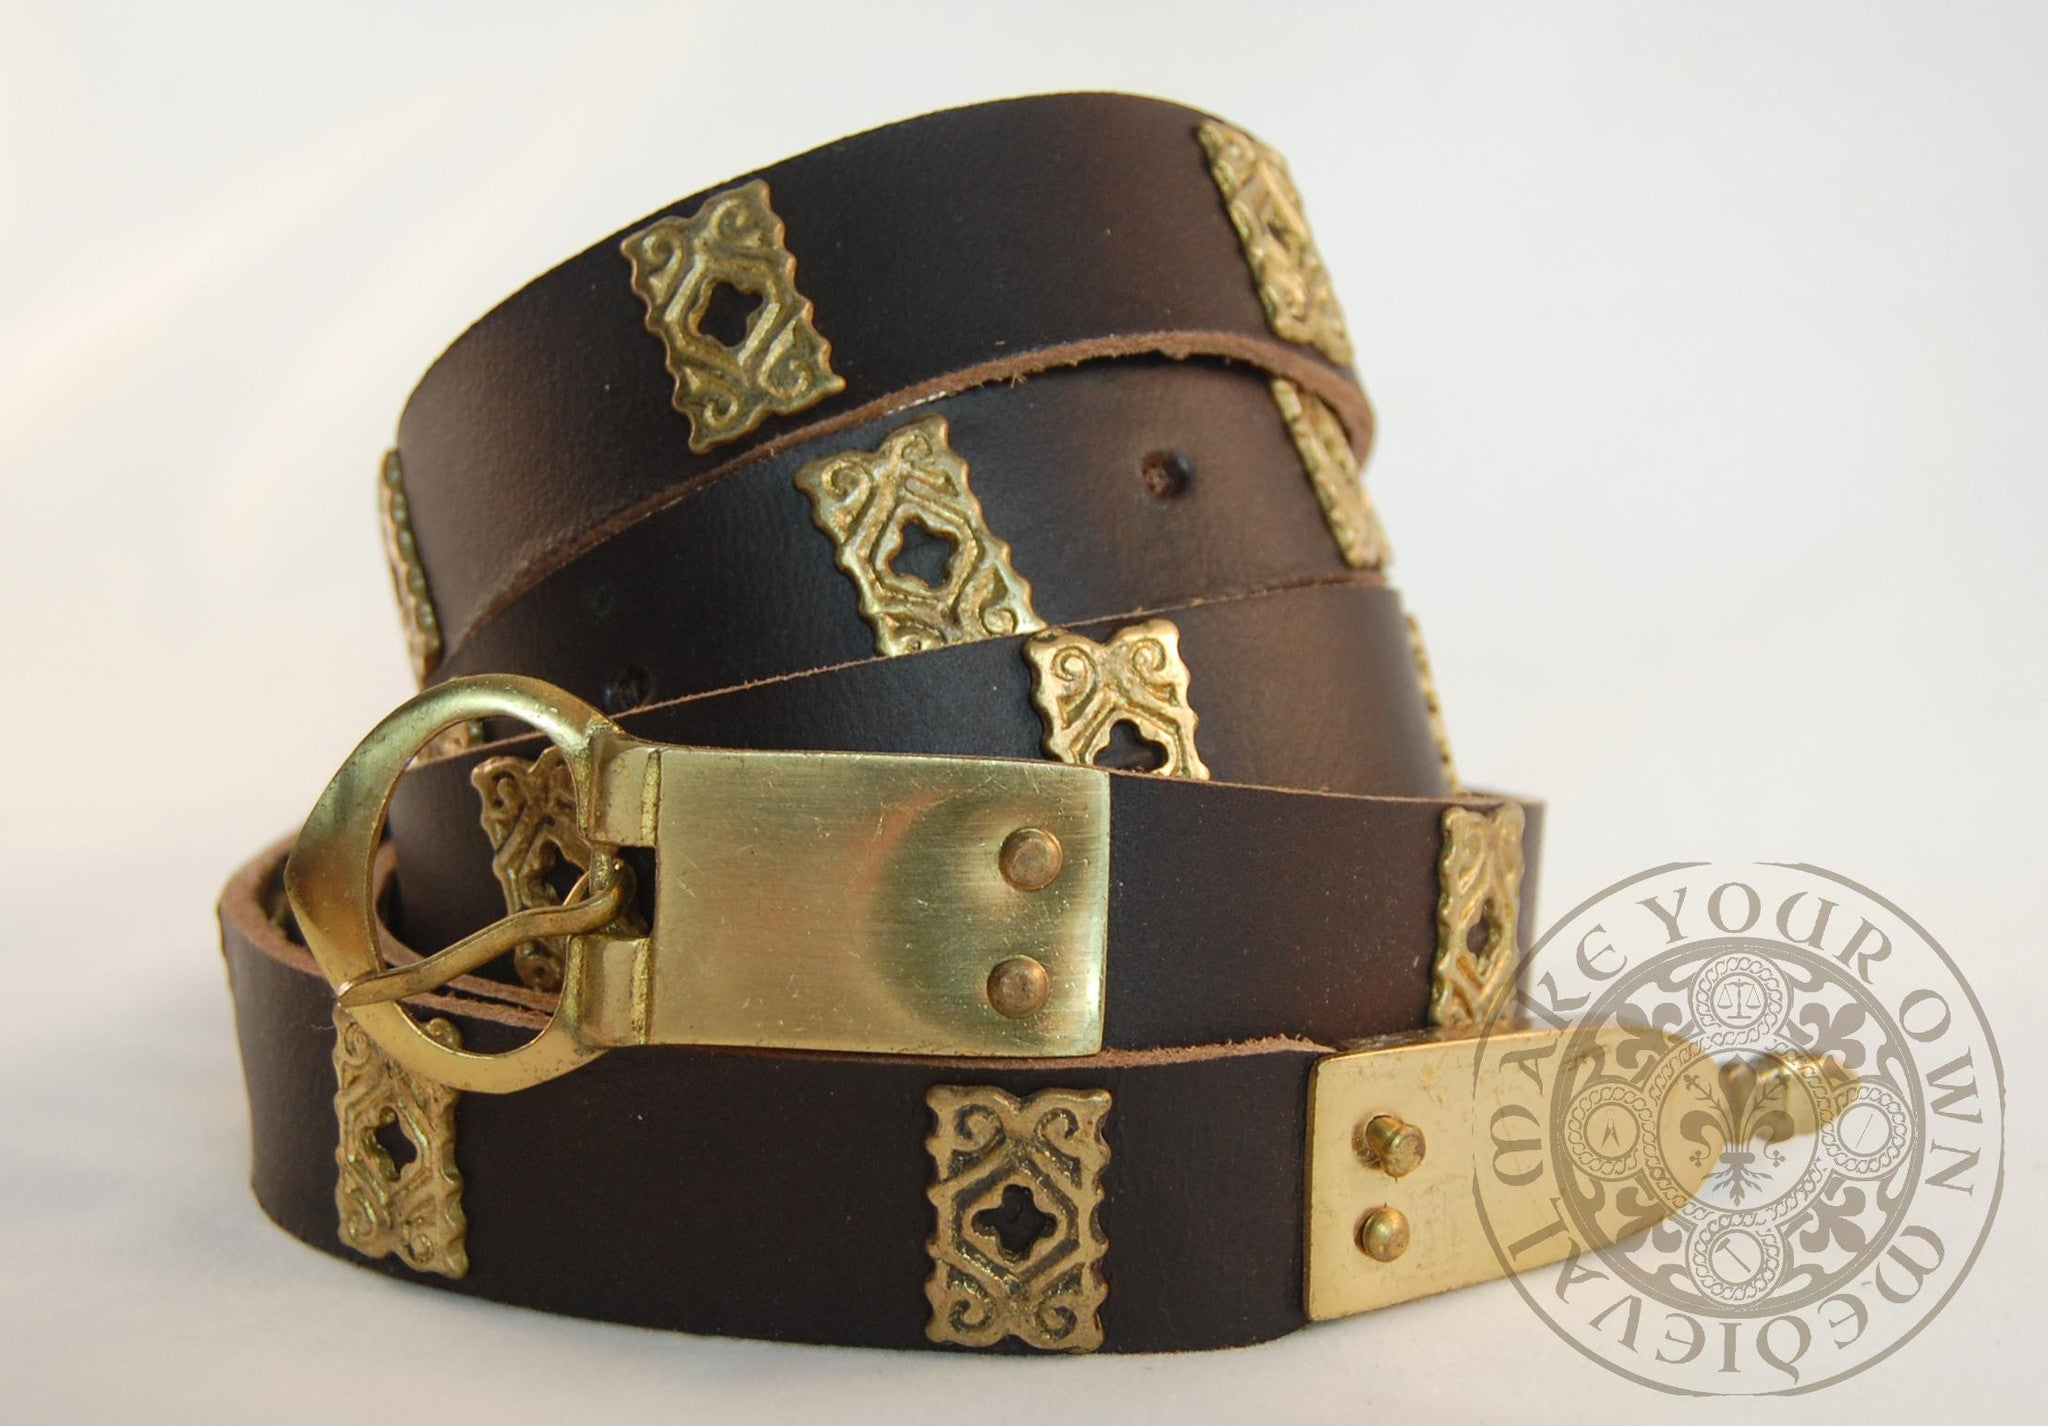 Medieval Belt with Mounts and Strap End for LARP Cosplay and Game of Thrones Costume